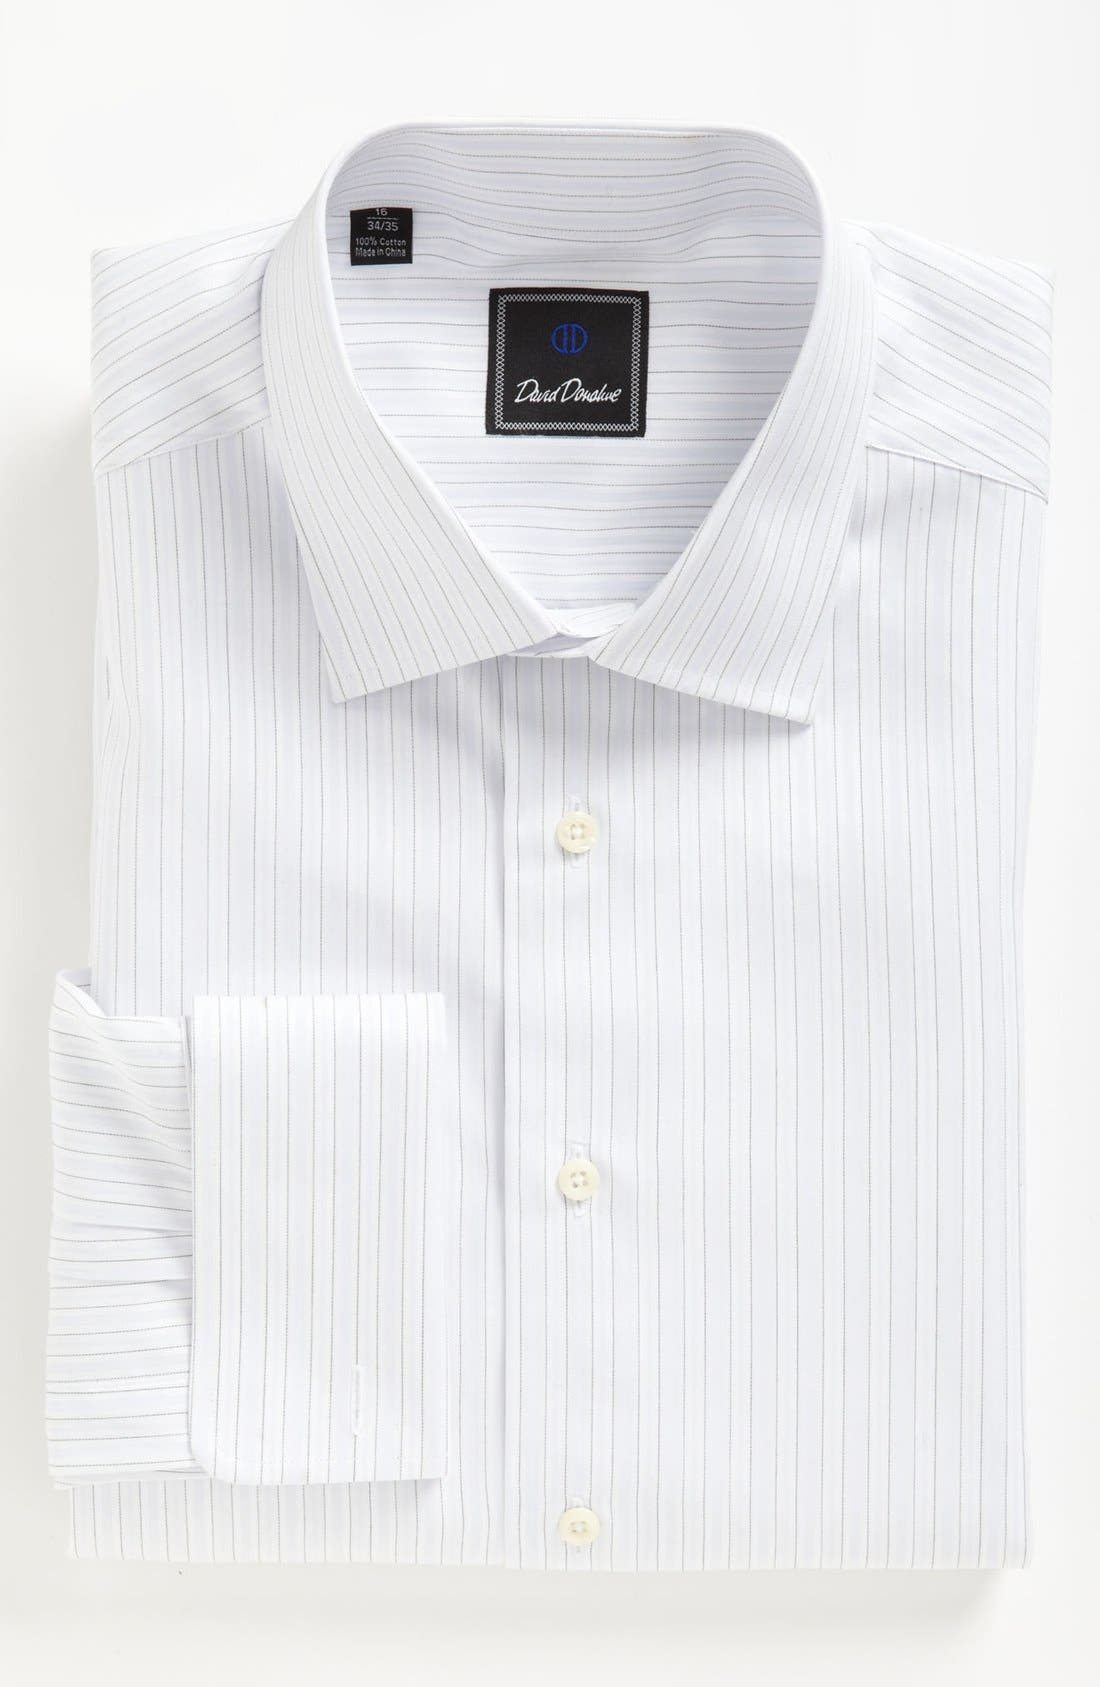 Alternate Image 1 Selected - David Donahue Dress Shirt & Tie